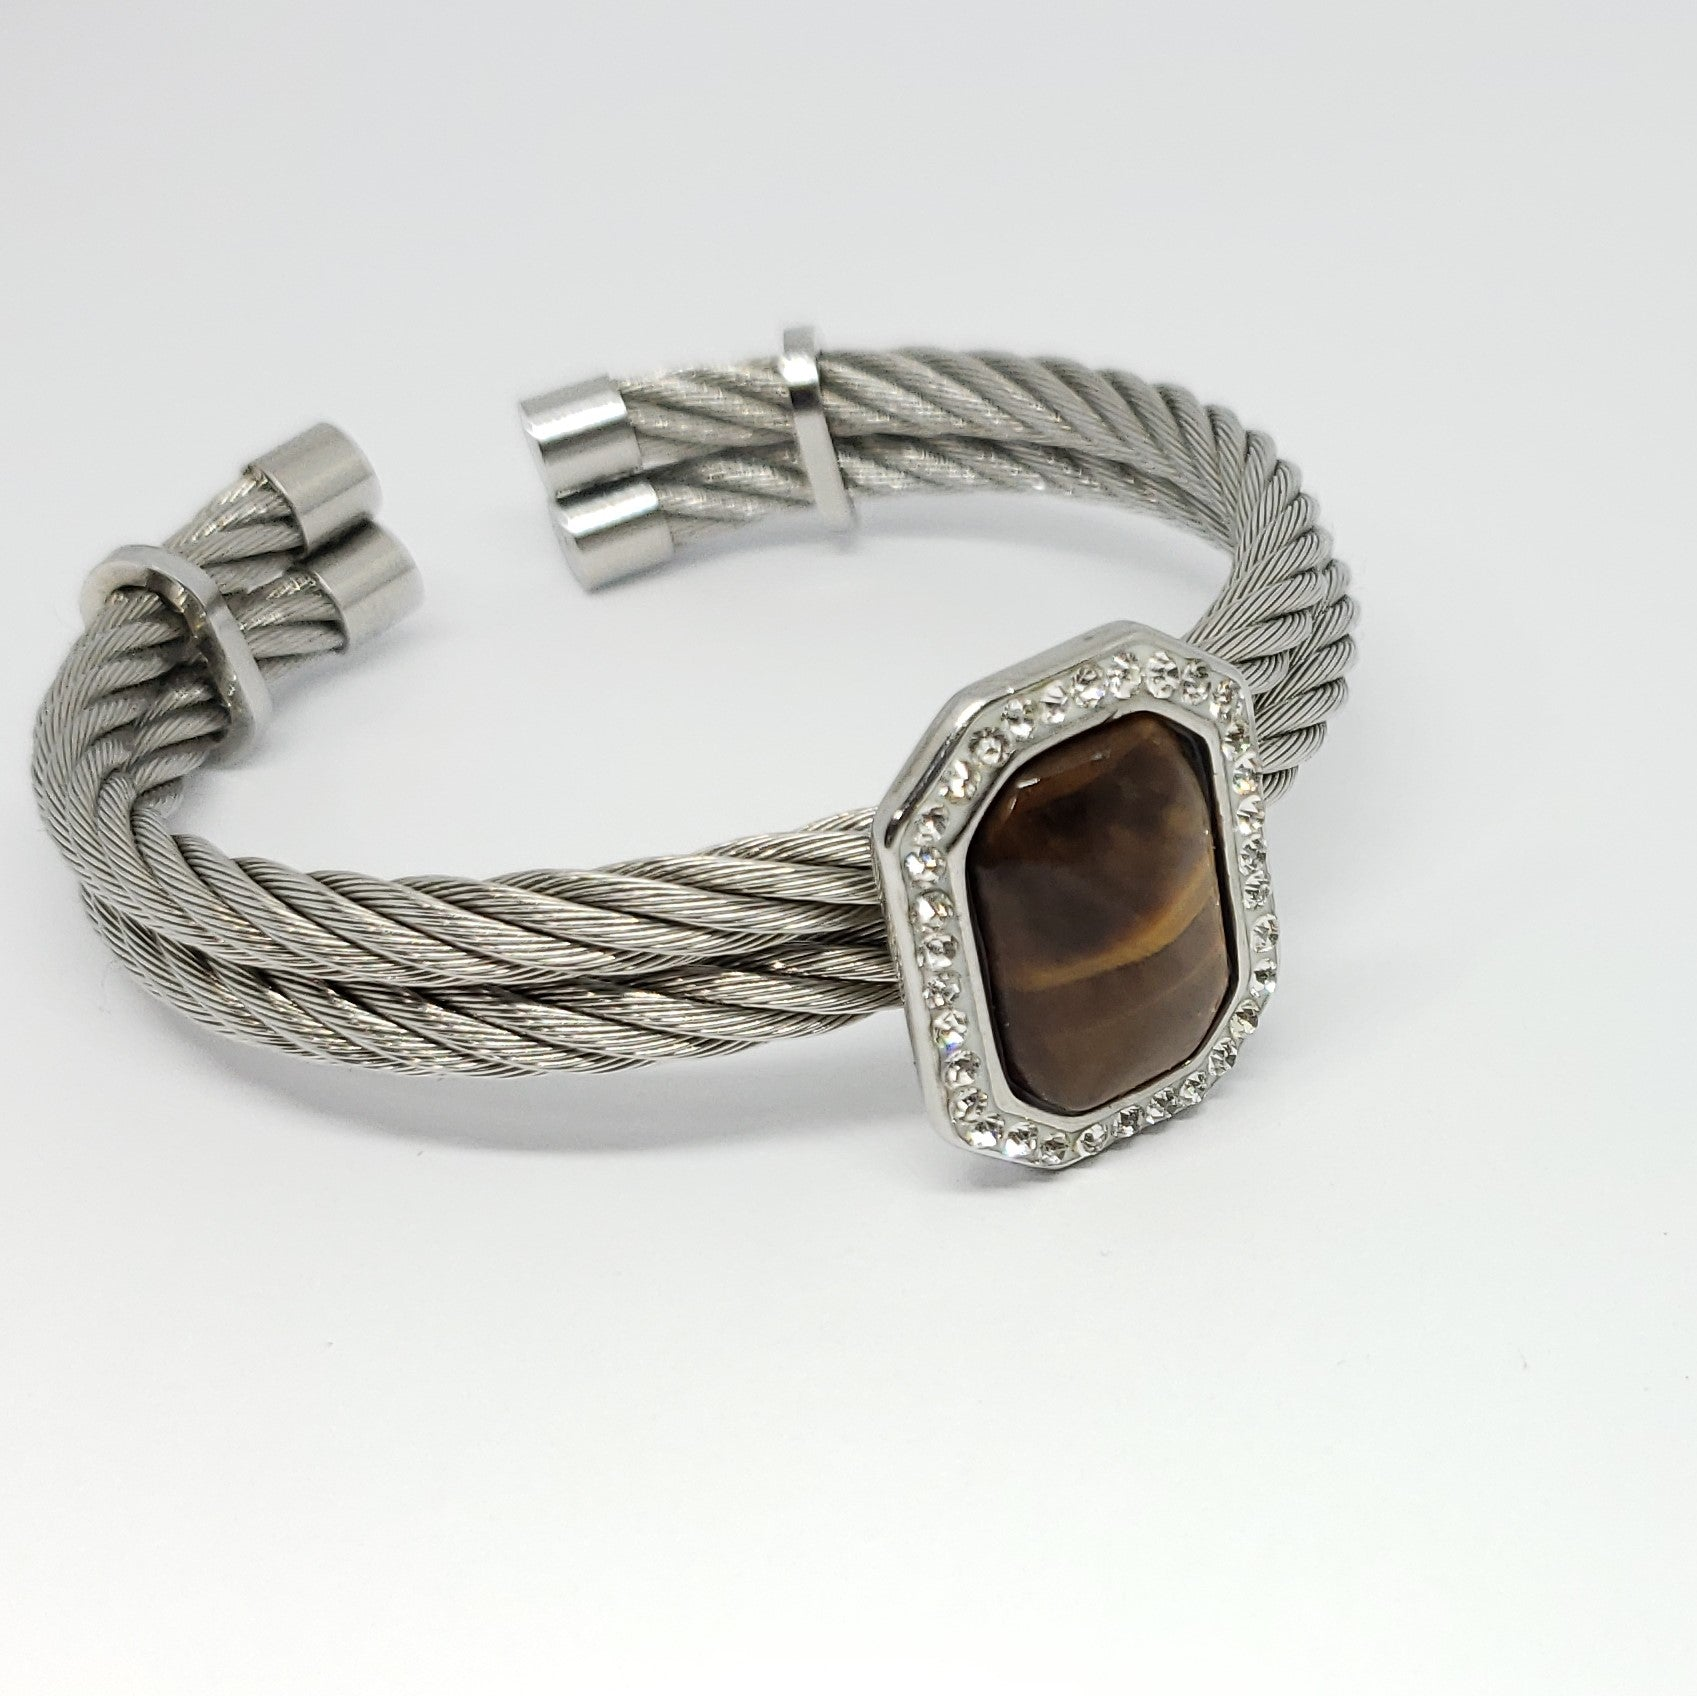 Tigers Eye Stainless Steel Cable Cuff - Houzz of DVA Boutique